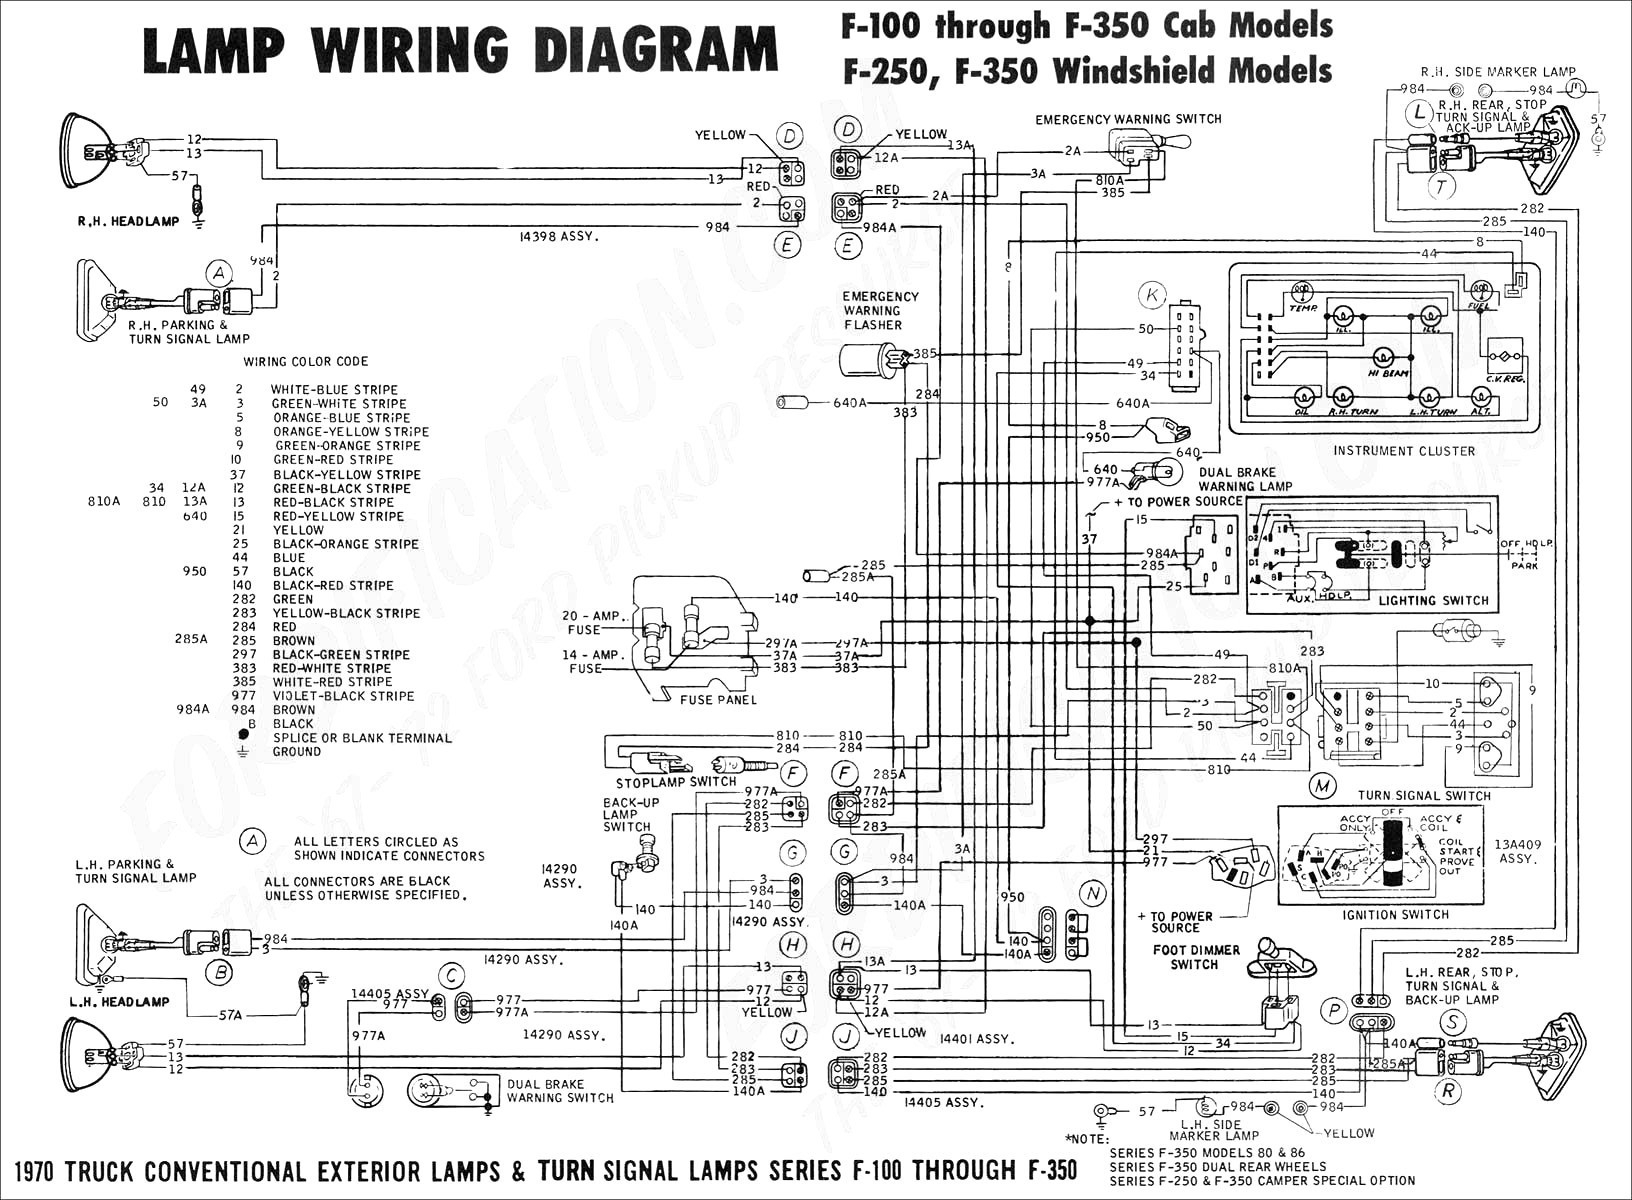 1973 82 Truck Wiring Diagram Get Free Image About Wiring Diagram